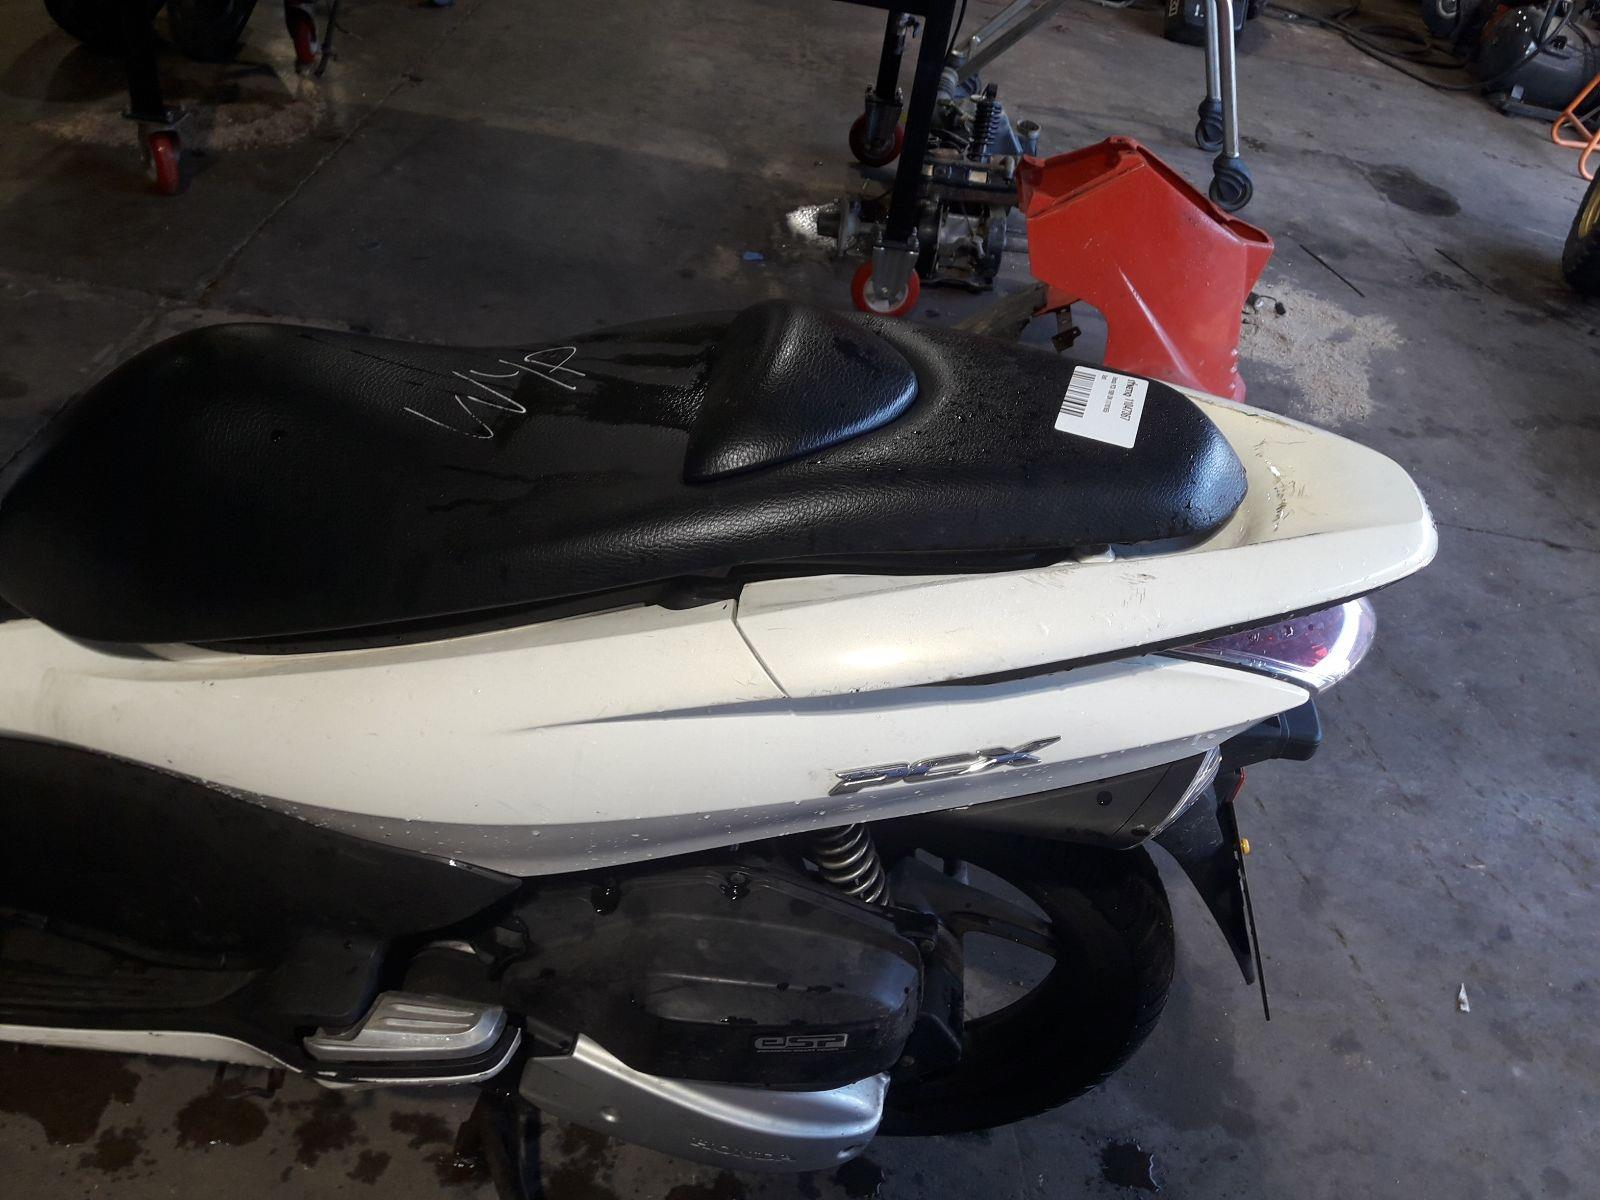 Honda Pcx 1989 On Other Petrol Automatic For Sale From Motorhog